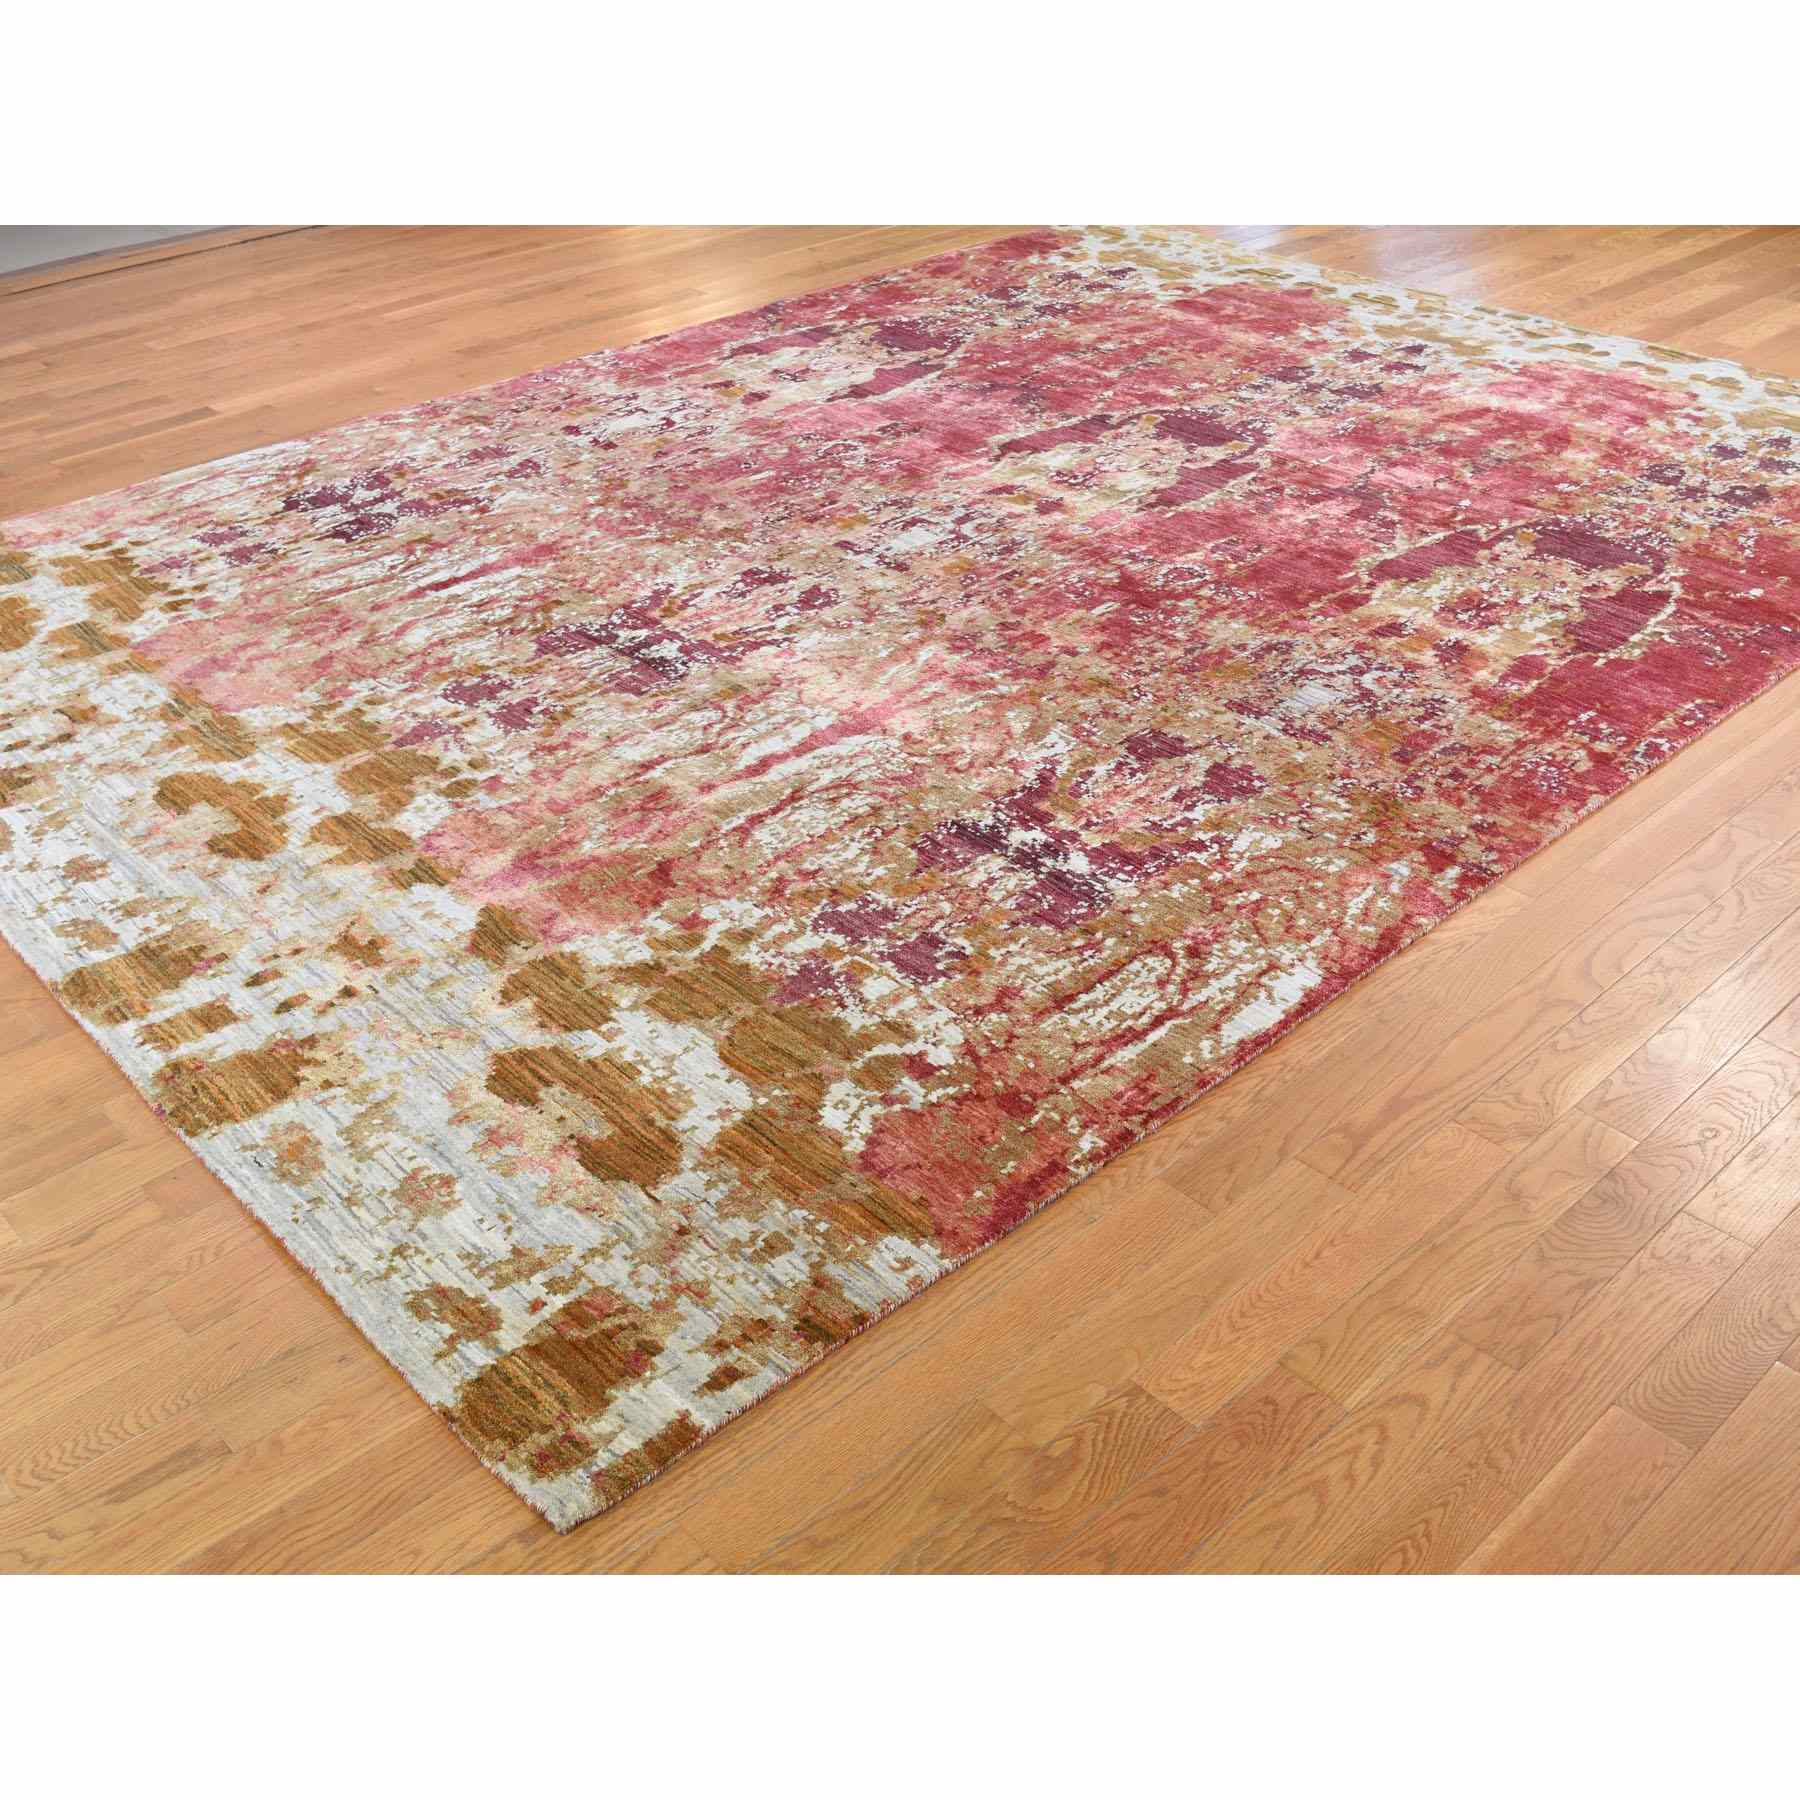 Modern-and-Contemporary-Hand-Knotted-Rug-239555